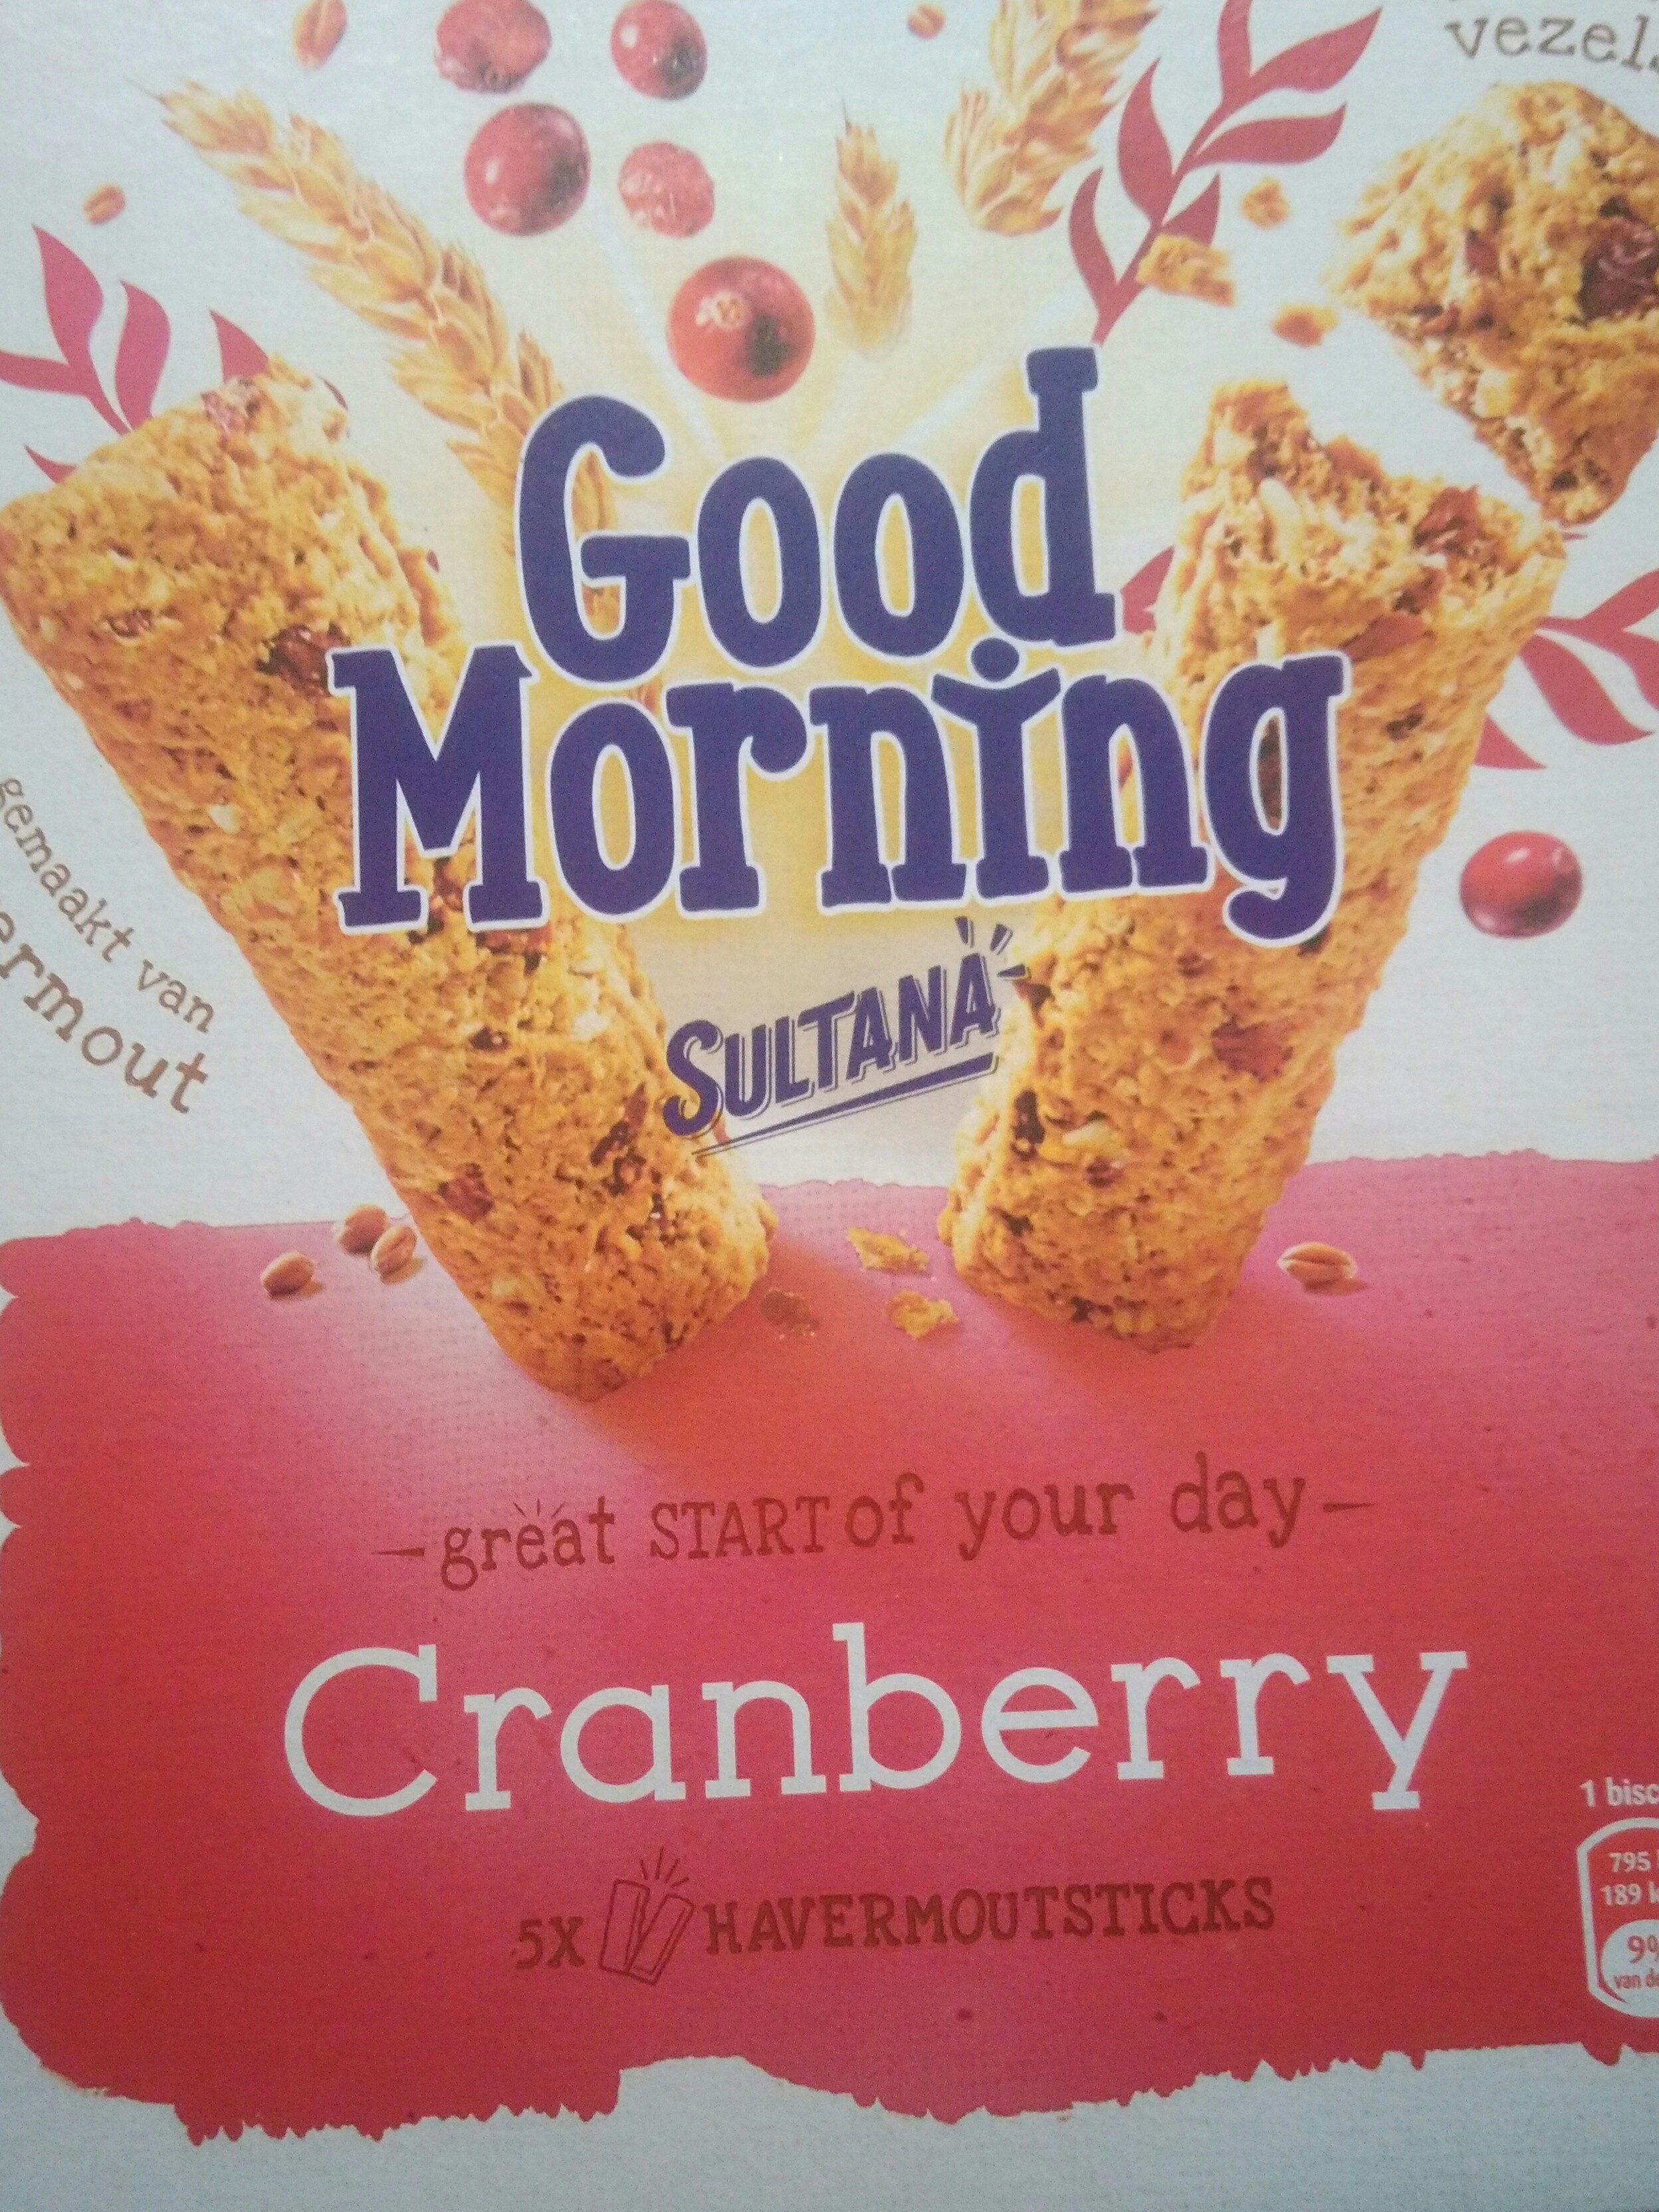 Sultana Goodmorning Cranberry - Product - fr